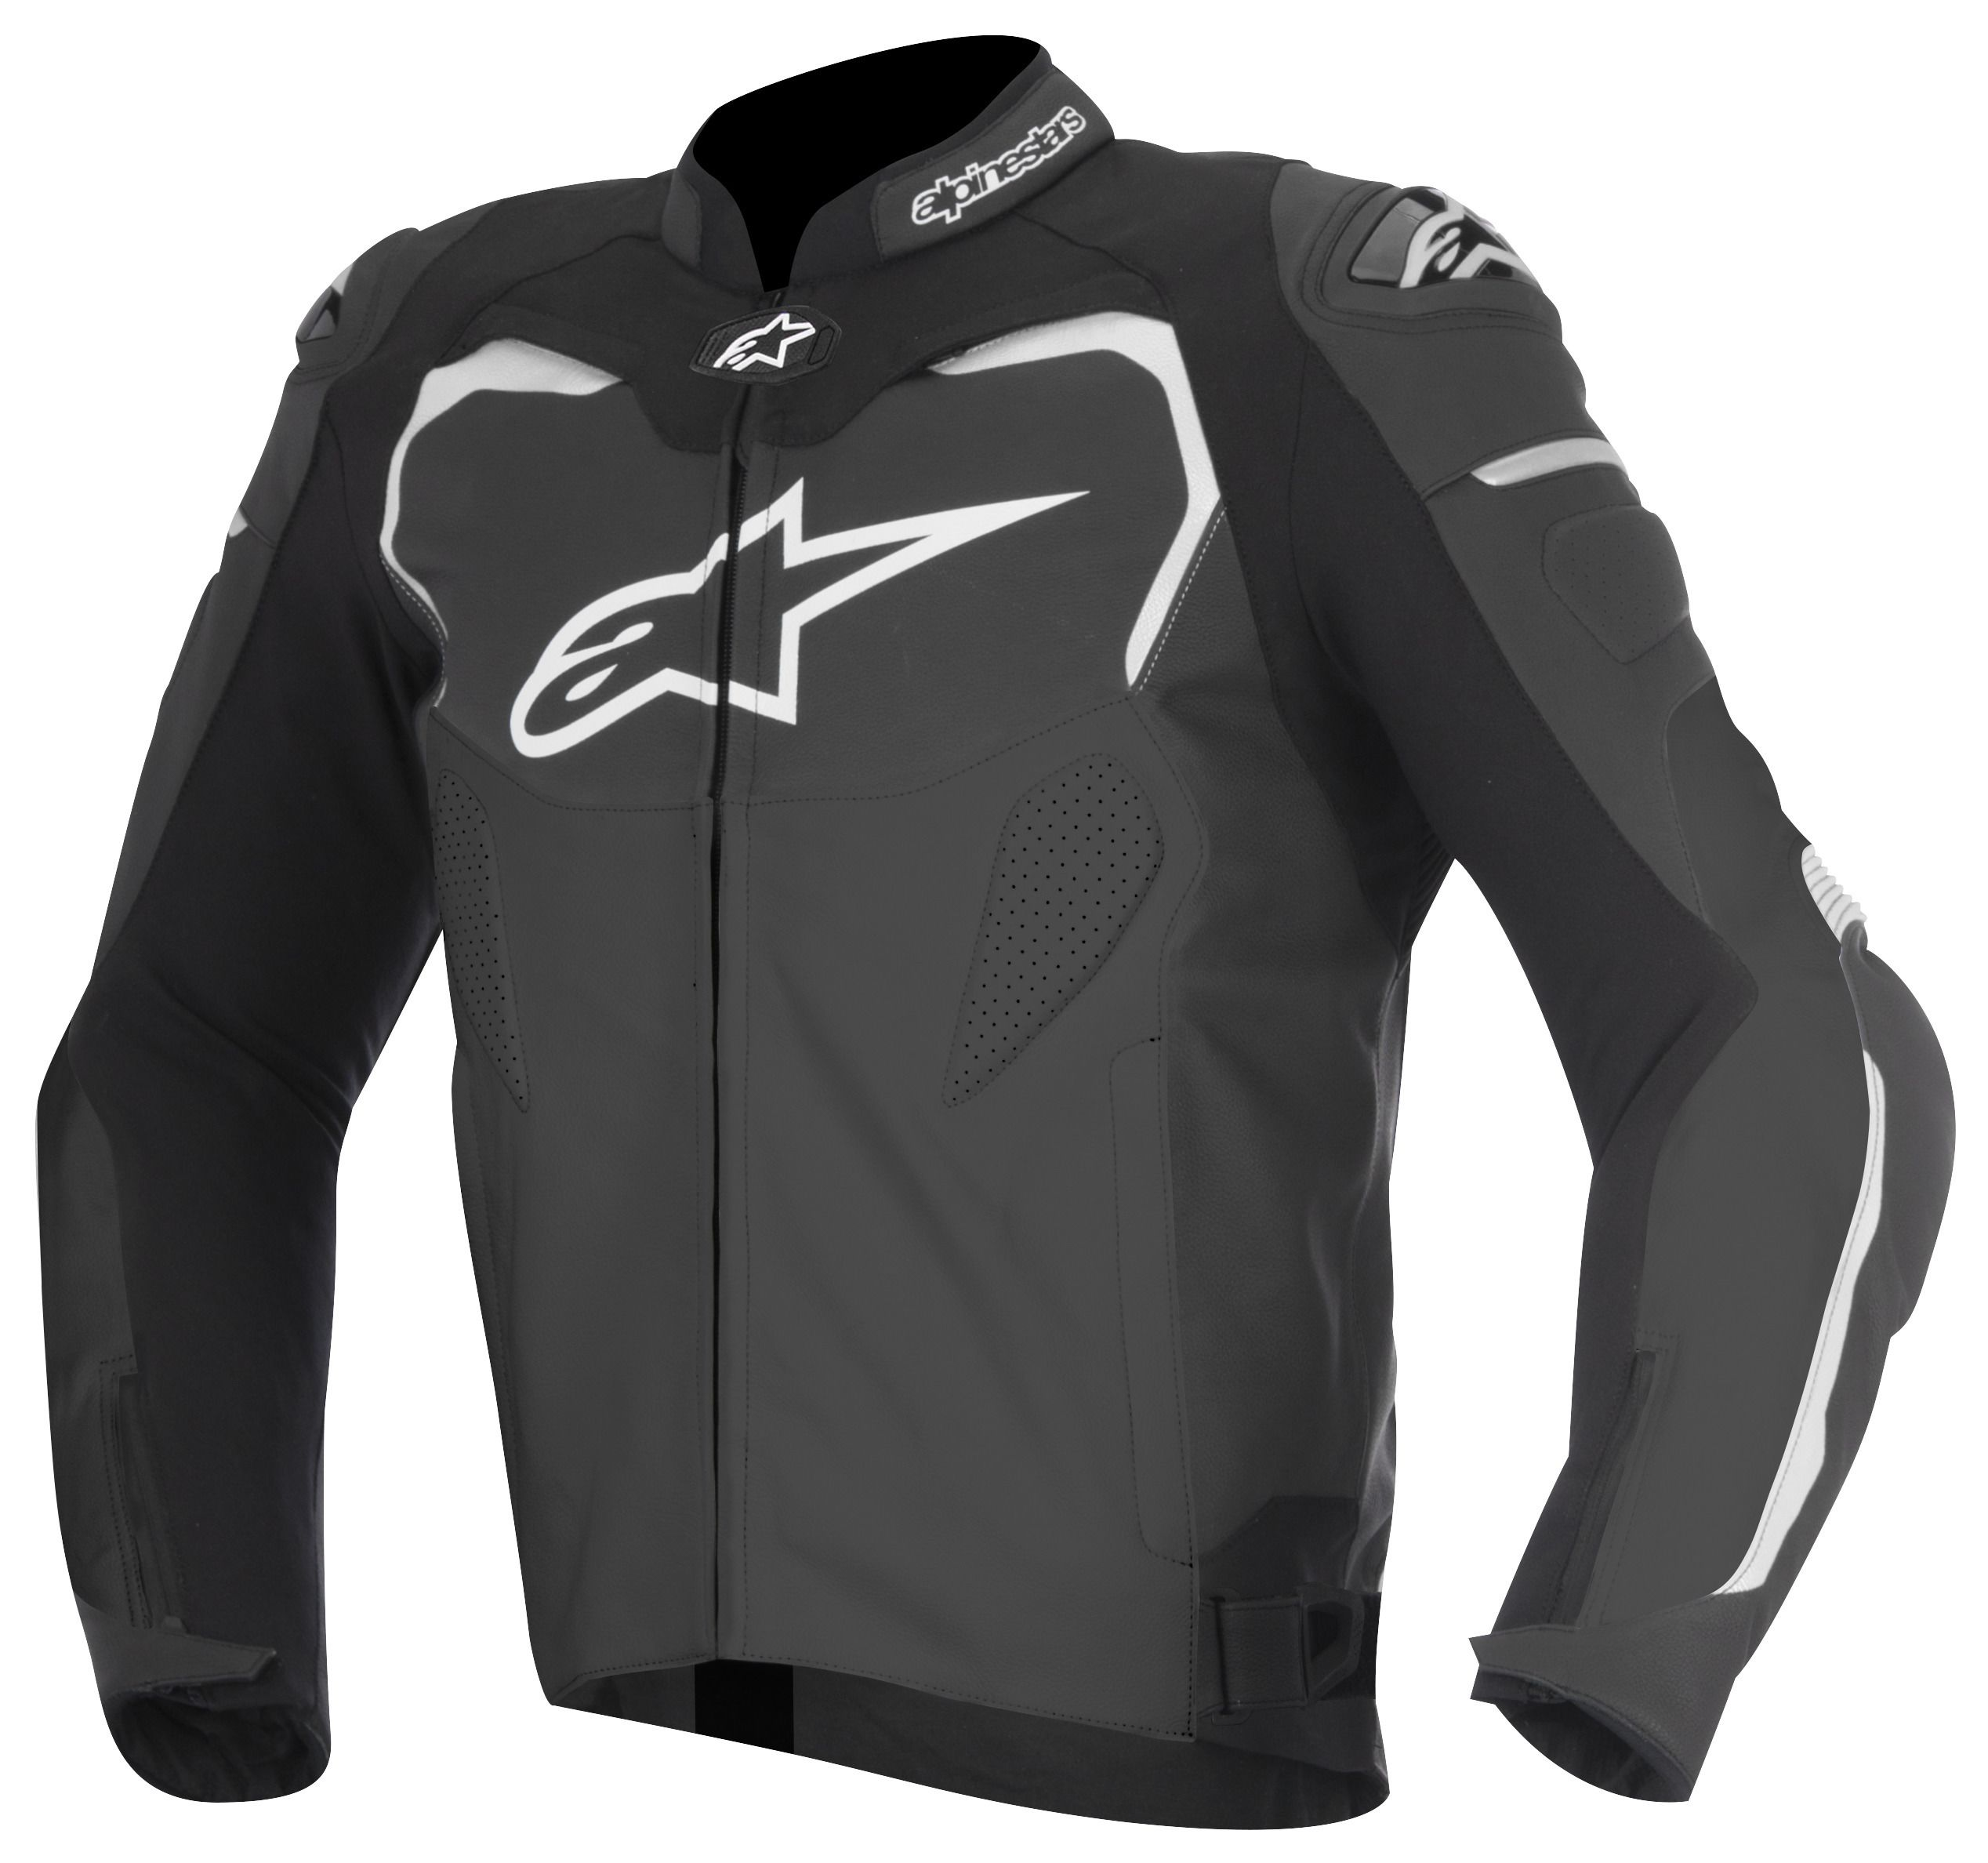 alpinestars gp pro jacket revzilla. Black Bedroom Furniture Sets. Home Design Ideas